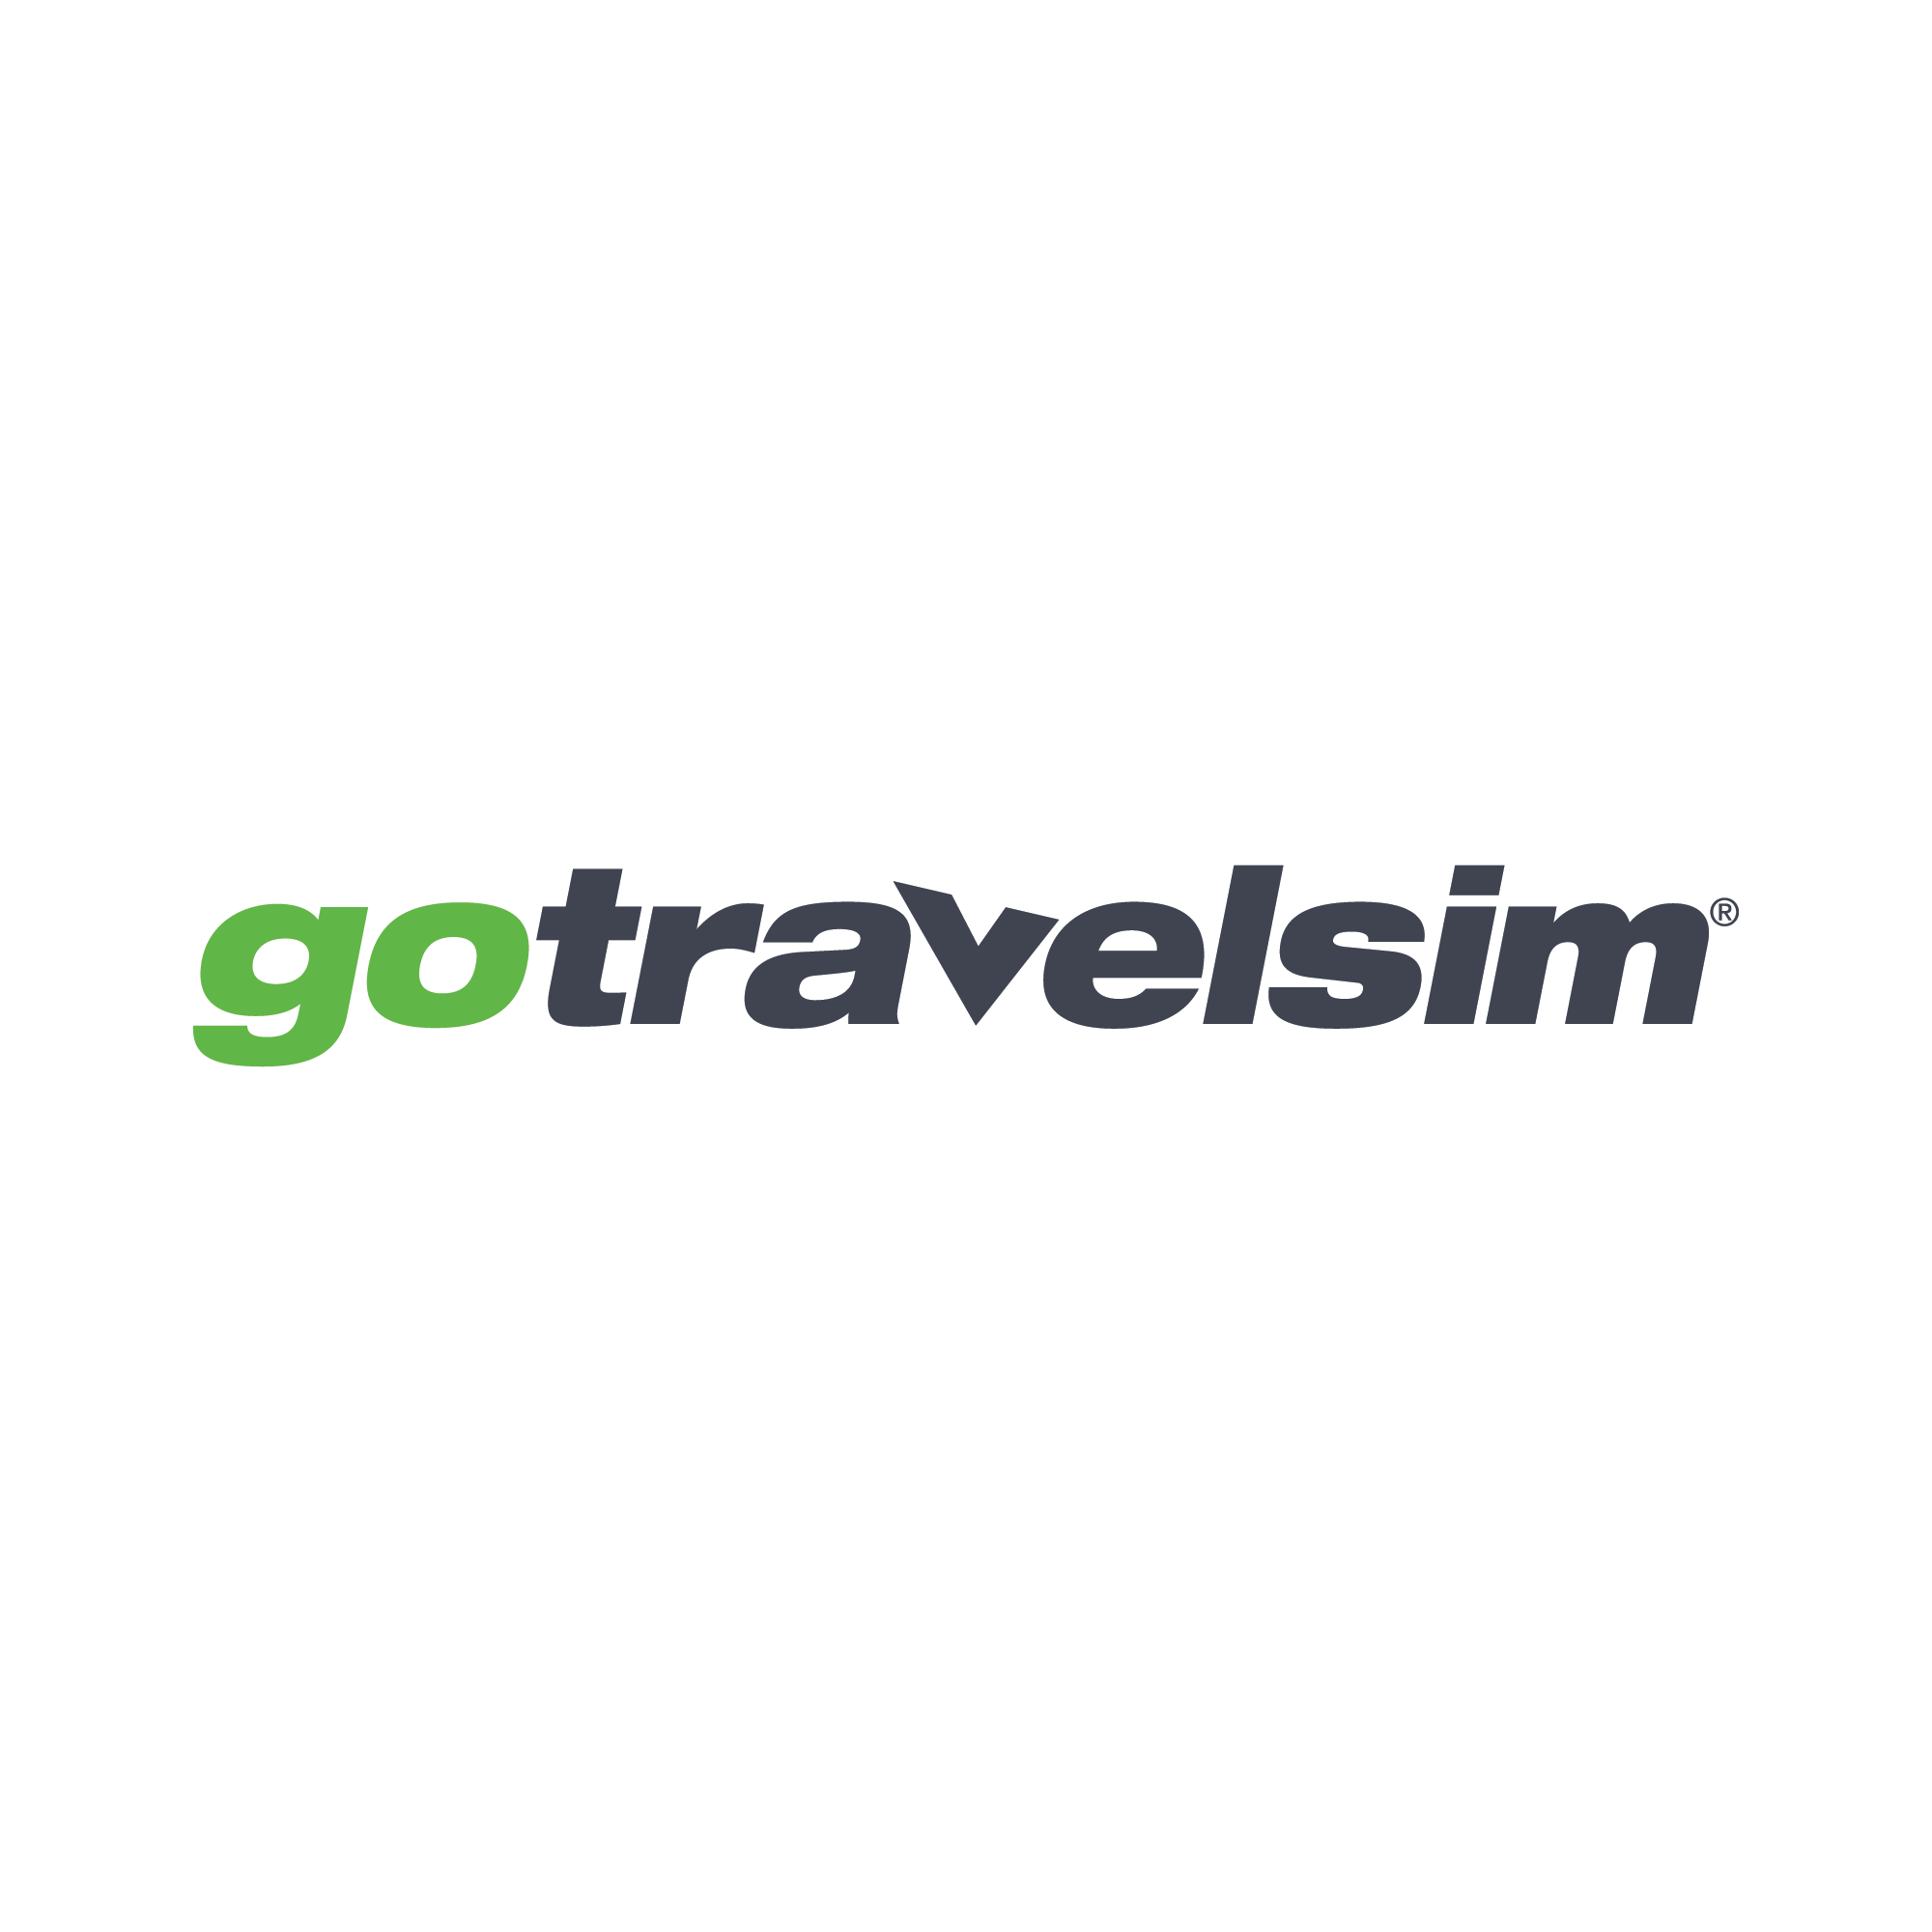 gotravelsim Help Center home page